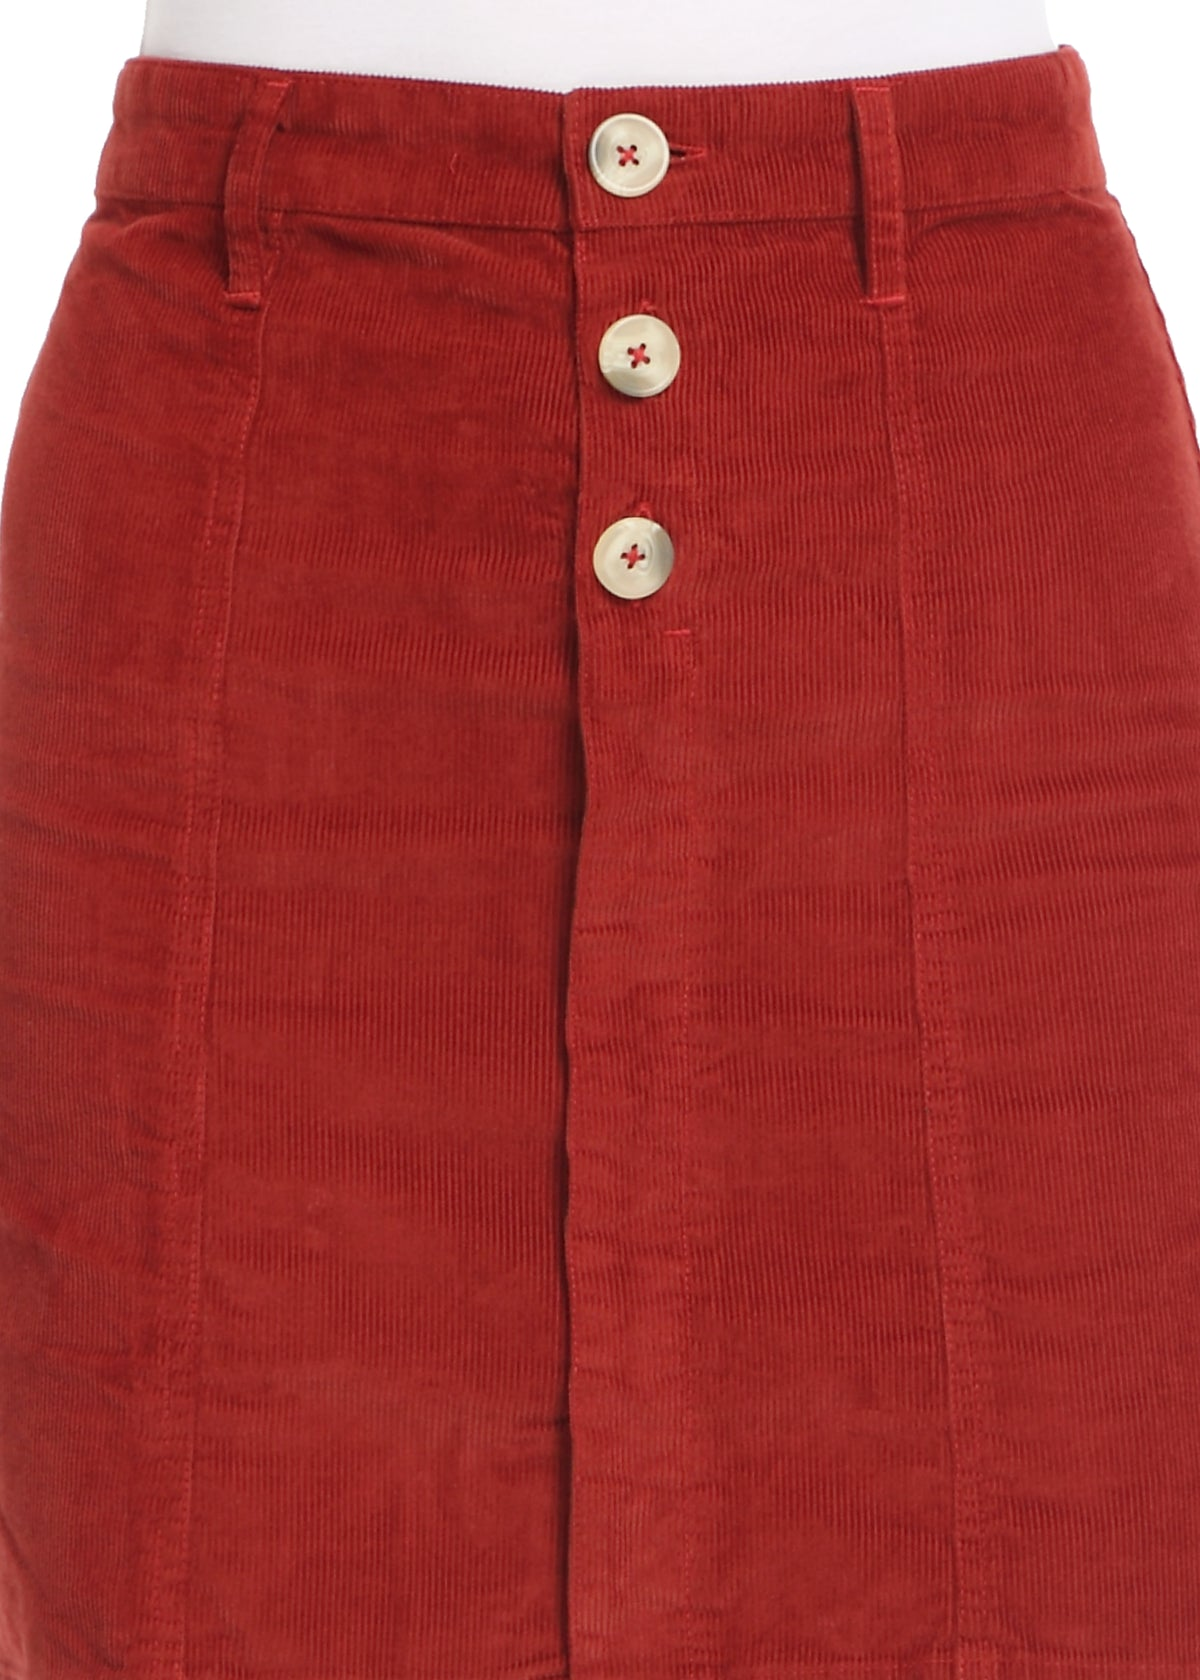 Rust Corduroy Skirt